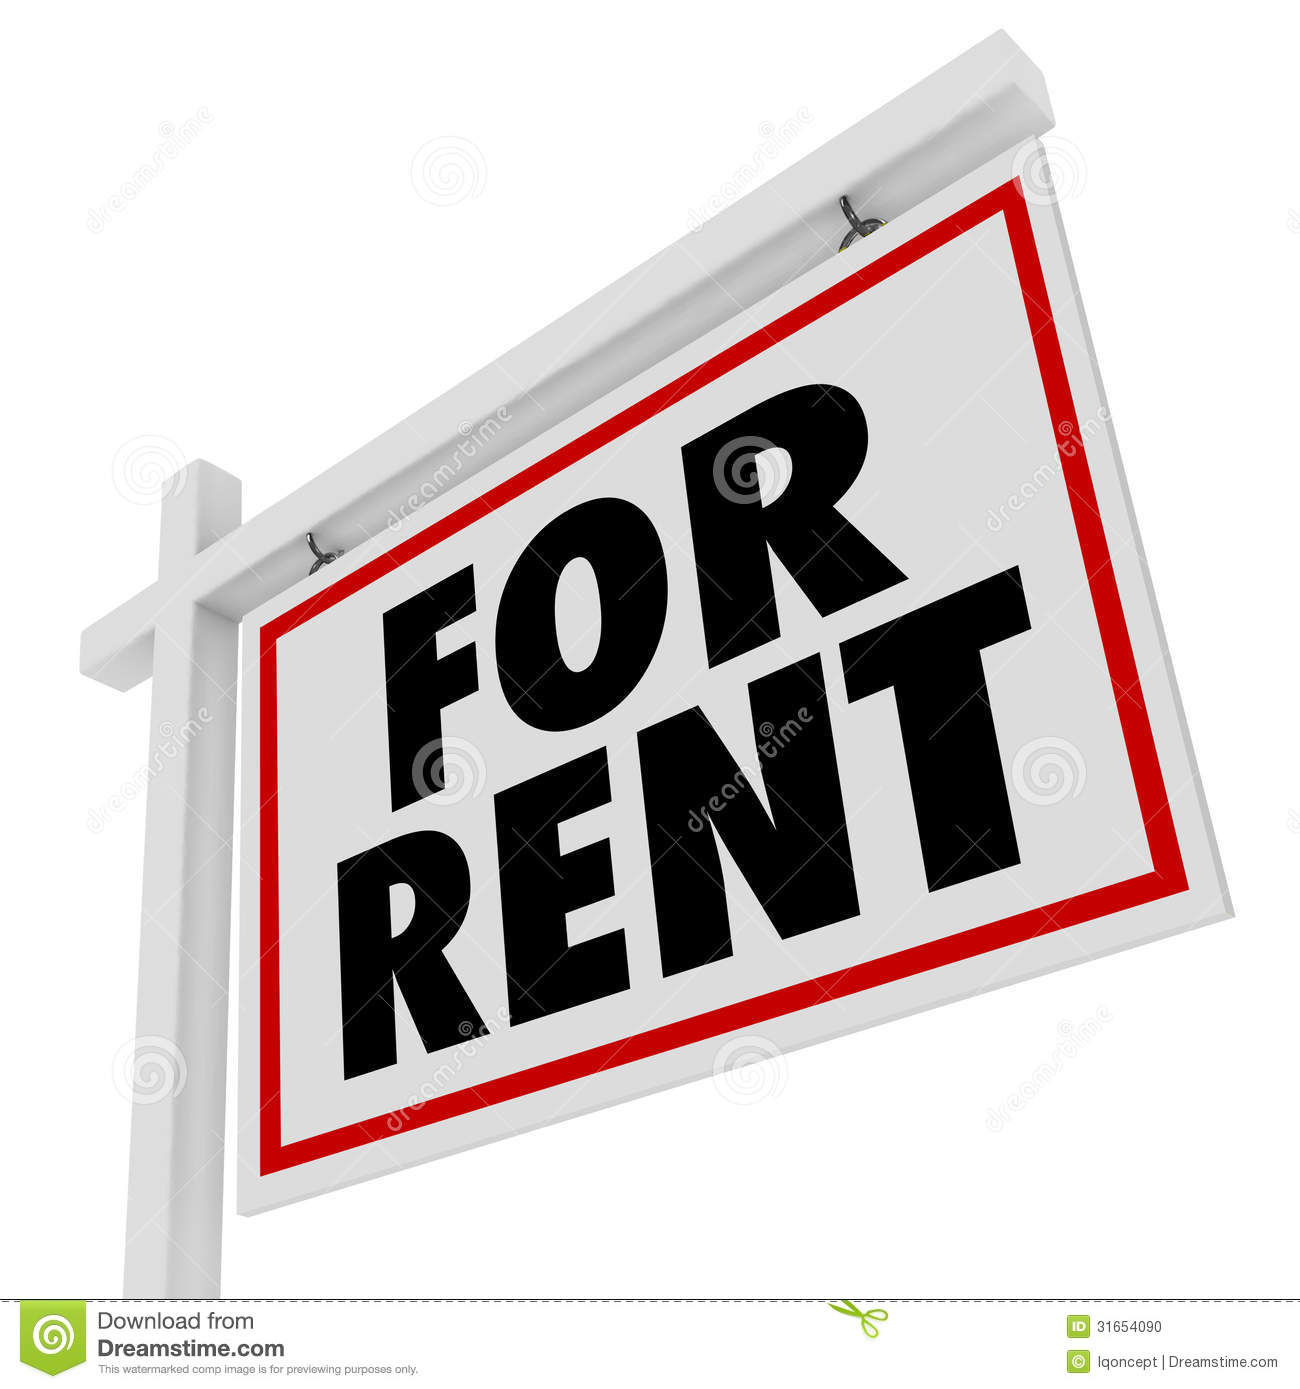 Realestate For Rent: For Rent Real Estate Home Rental House Sign Stock